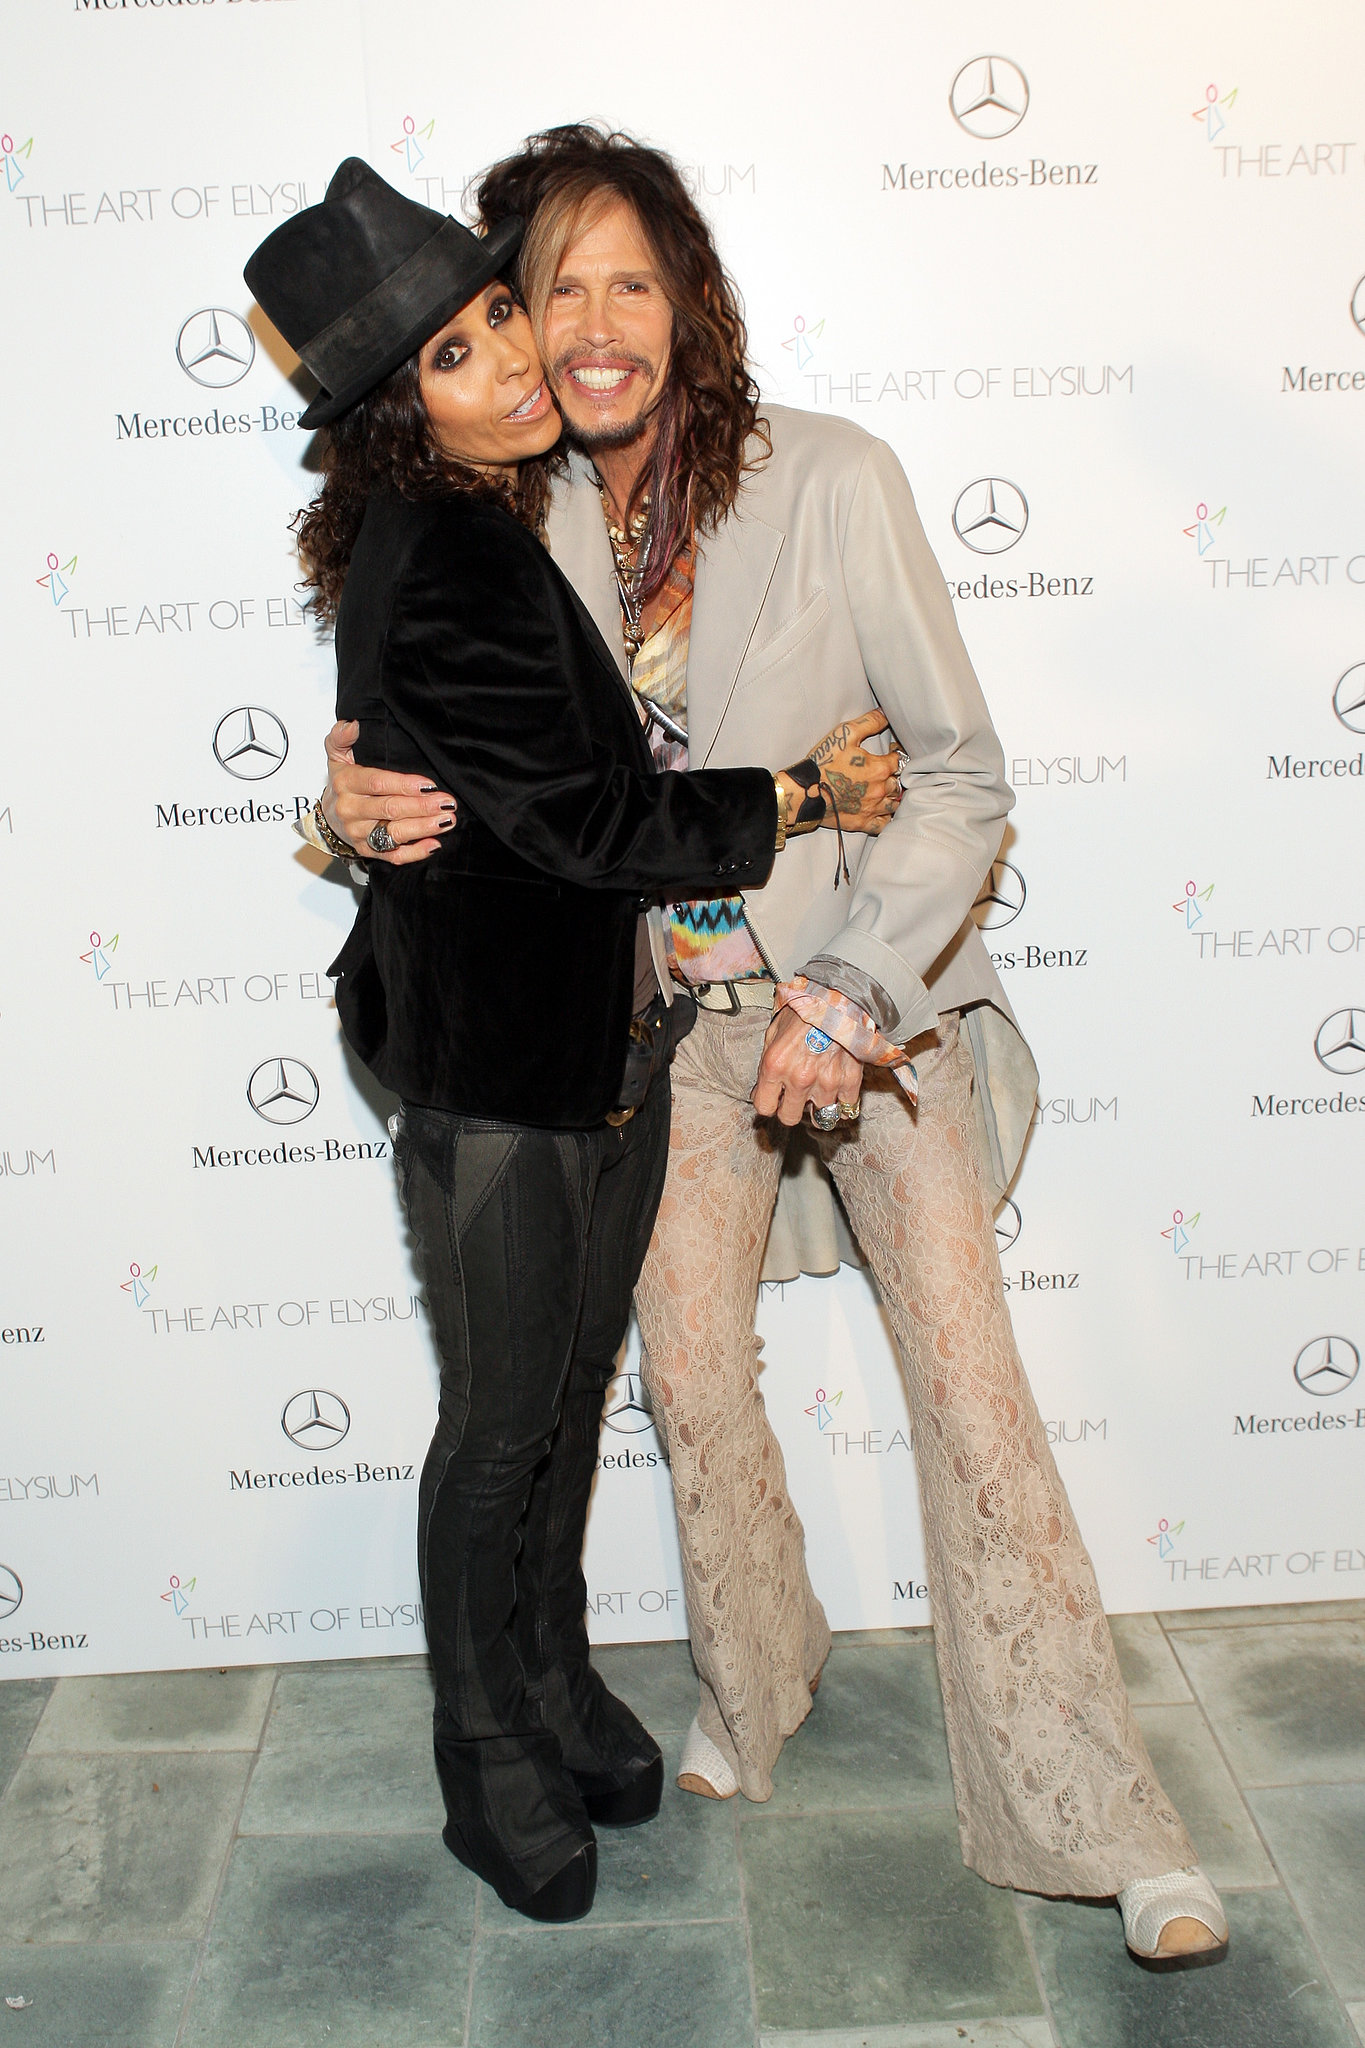 Linda Perry and Steven Tyler had fun when they both arrived at the party.